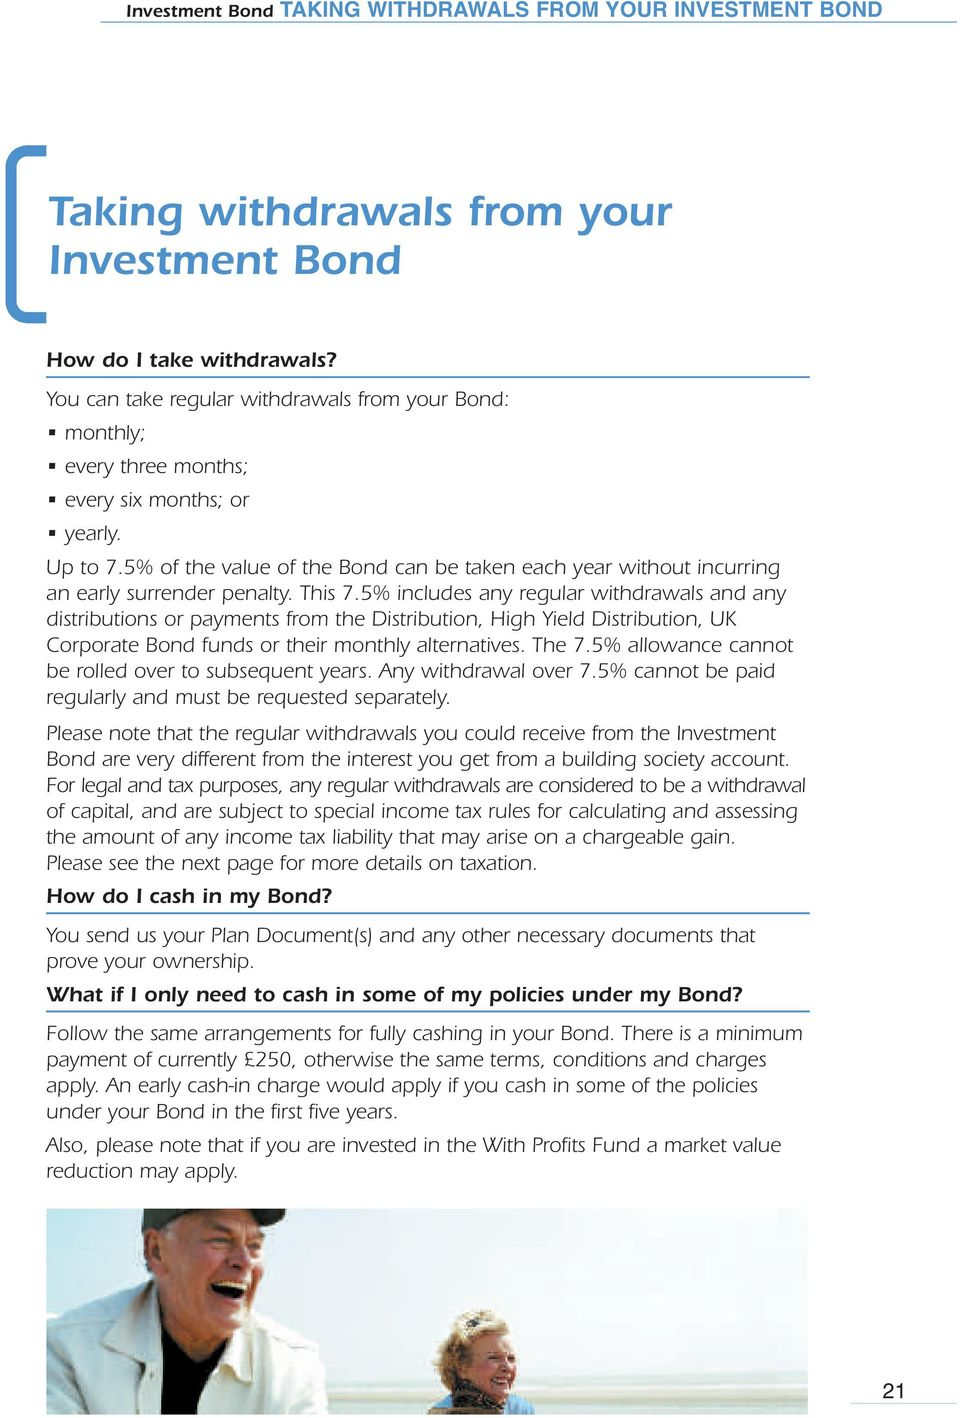 5% of the value of the Bond can be taken each year without incurring an early surrender penalty. This 7.